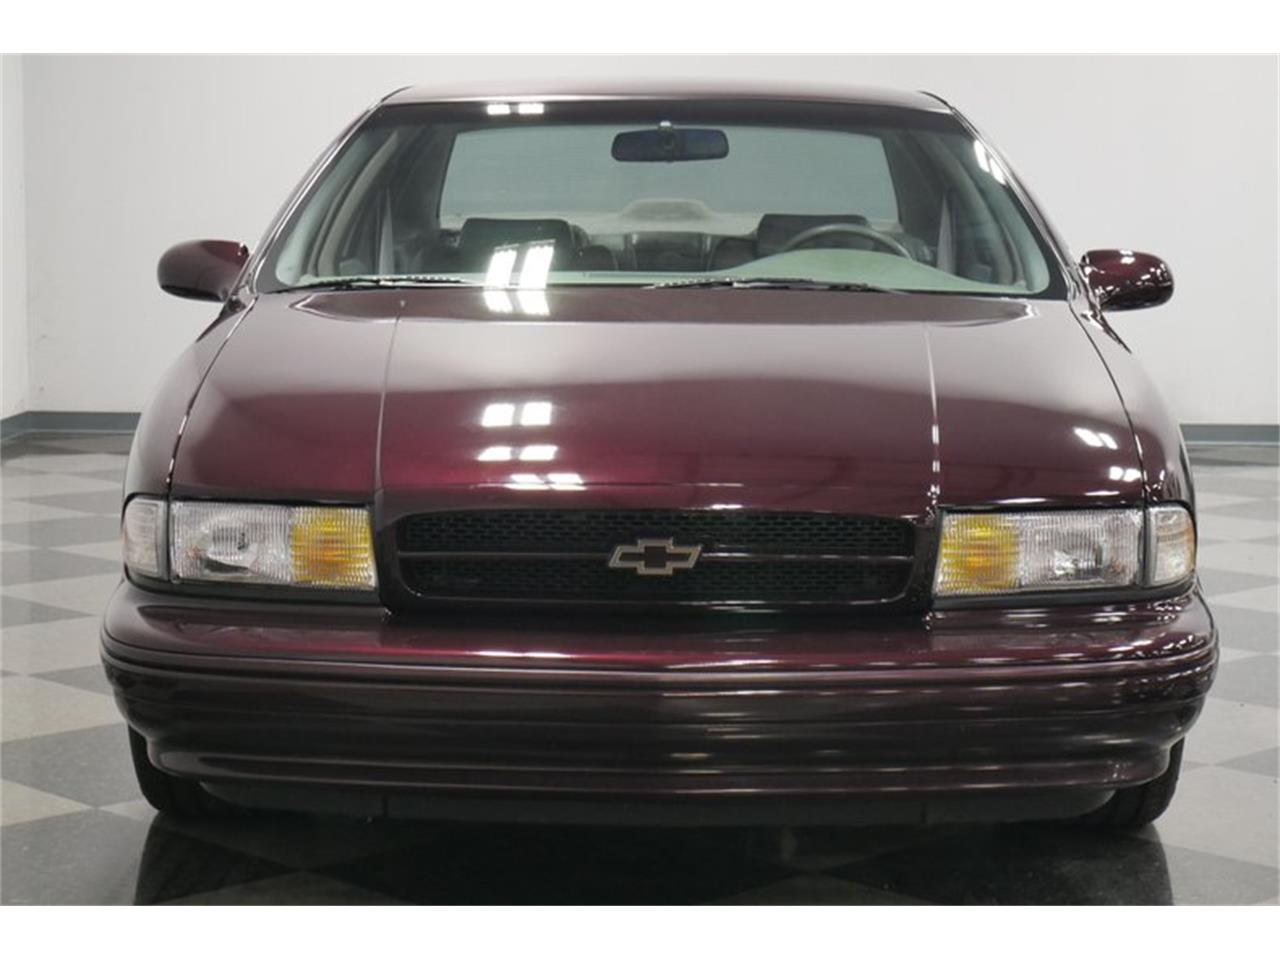 1996 Chevrolet Impala (CC-1345313) for sale in Lavergne, Tennessee